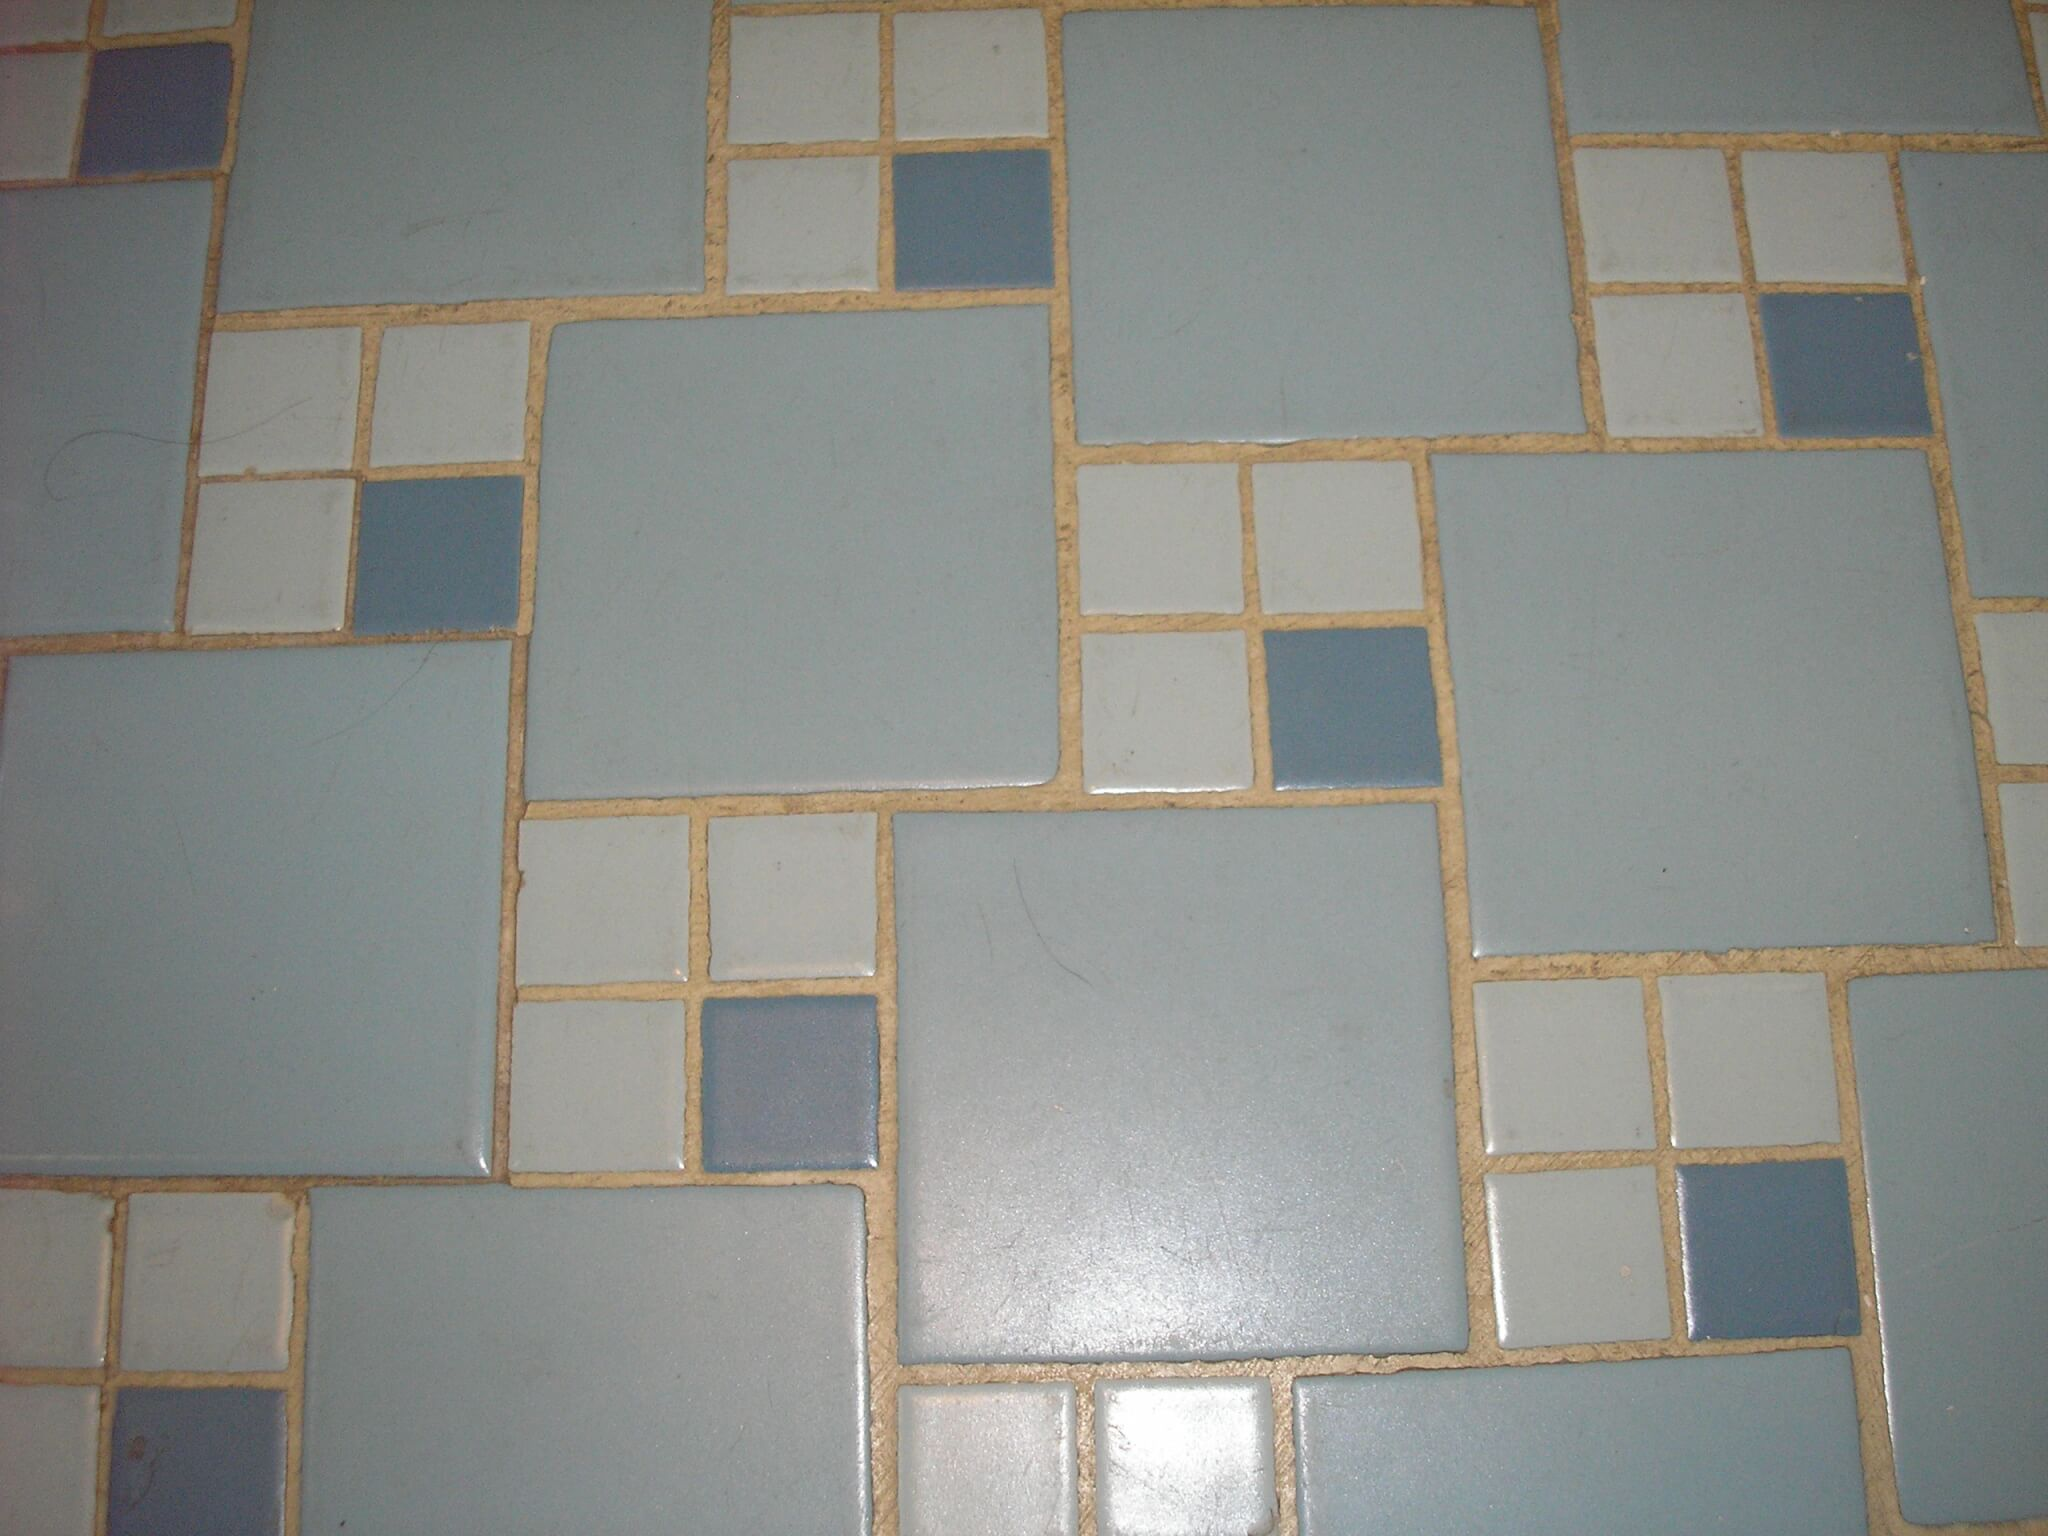 school tile floor texture. Old Blue Ceramic Tile School Floor Texture